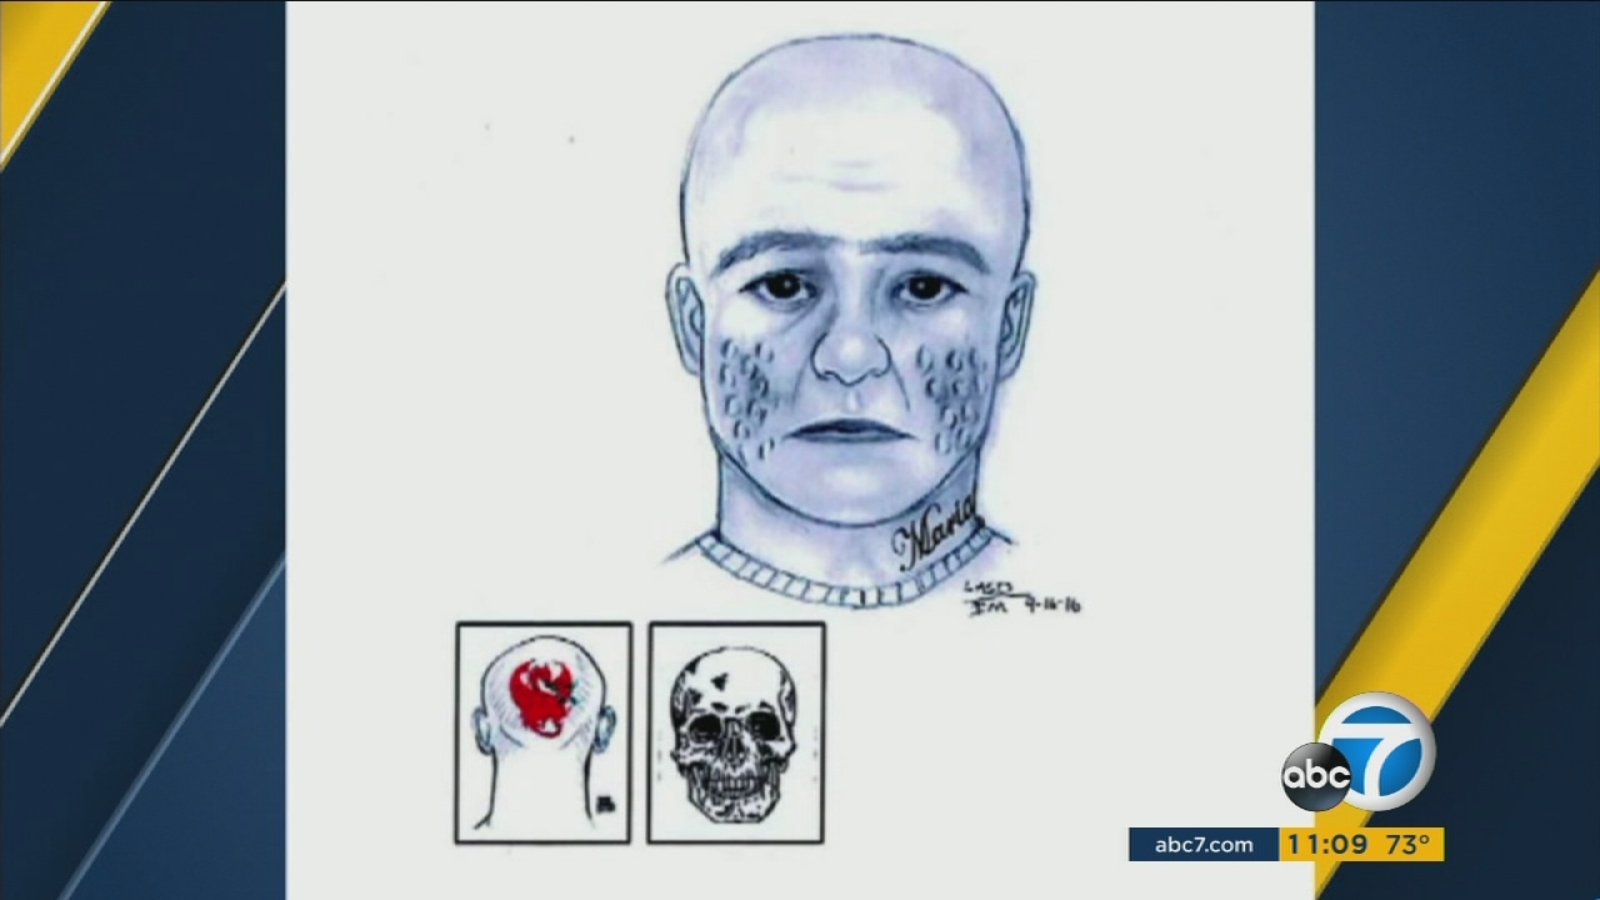 Suspect sought in attempted kidnapping of 9-year-old boy near El Monte school